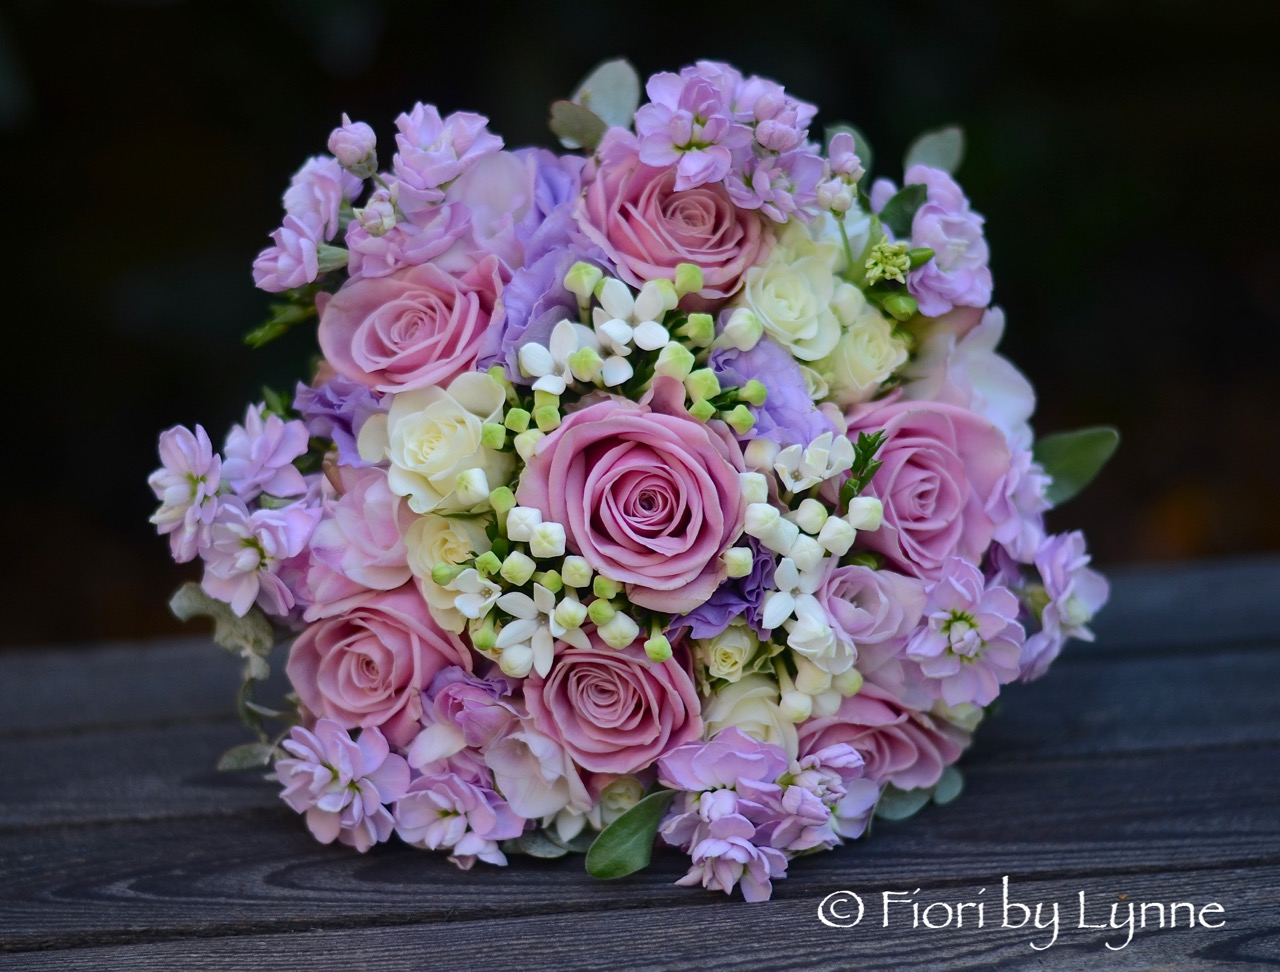 pink-lilac-ivory bouquet of rose, freesia, lisianthus,bouvardia,stock.jpg